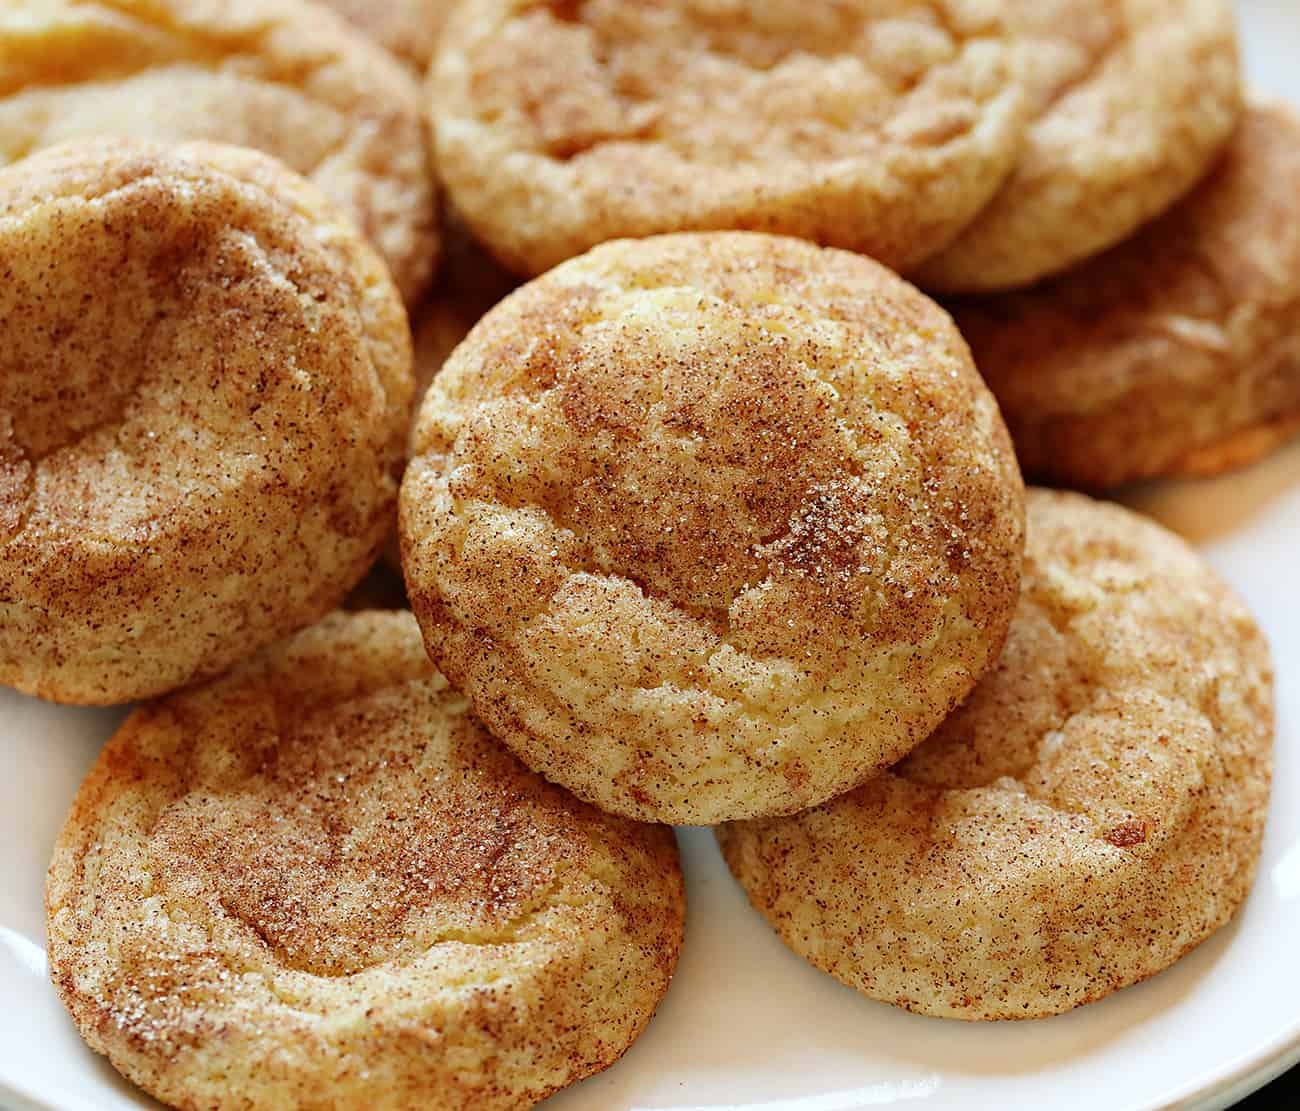 Snickerdoodle Cookies on a White Plate